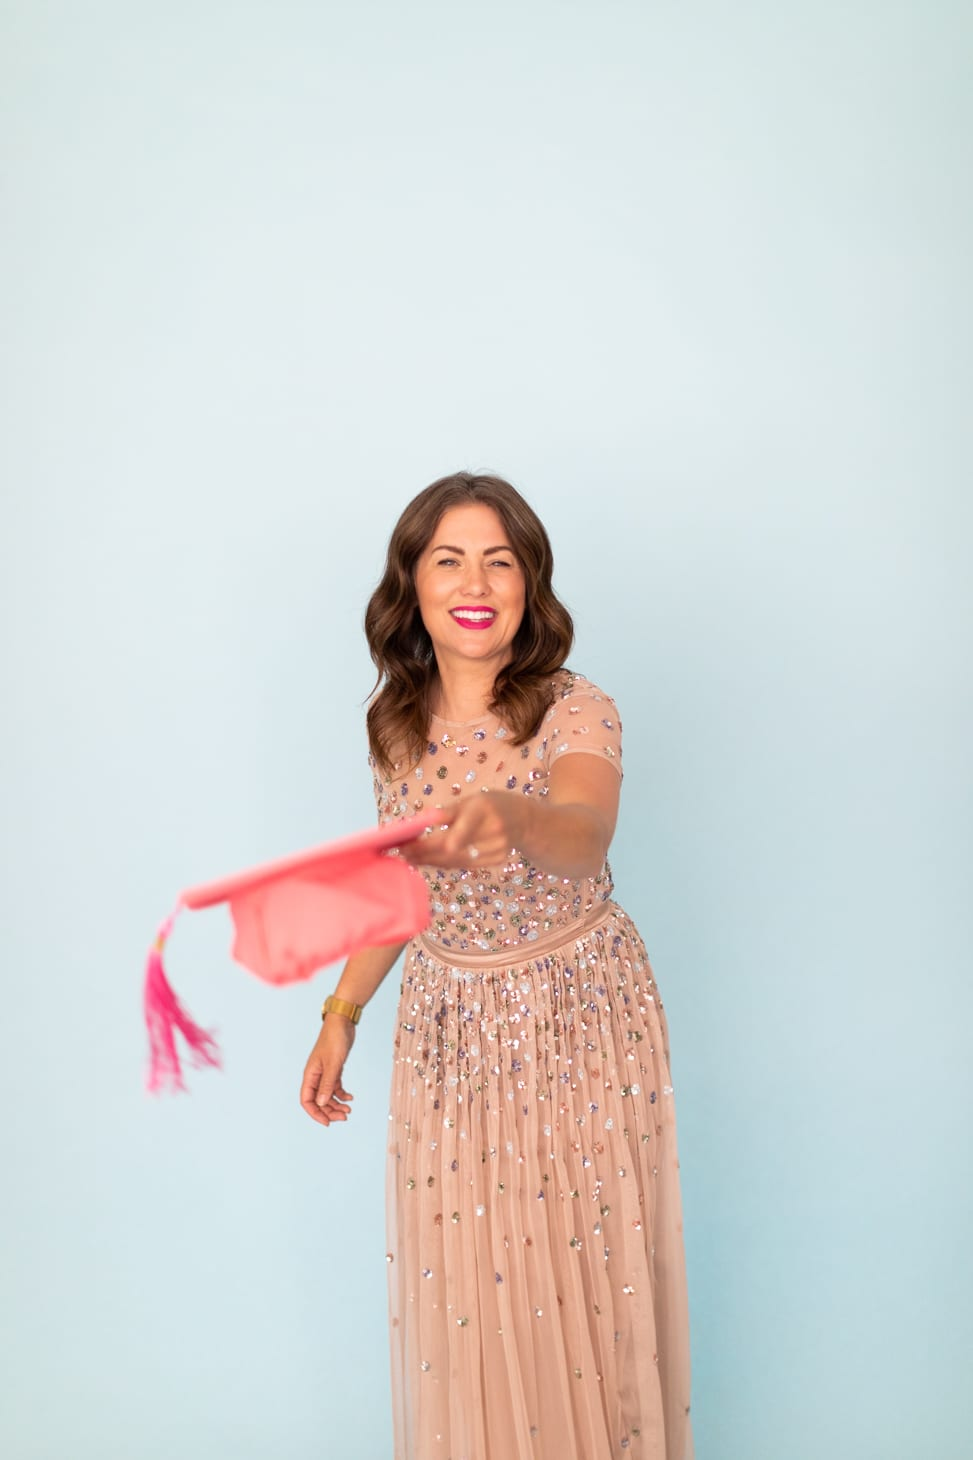 Jillian Harris for The Jilly Academy throwing a graduation cap in the air for the Alumni members.